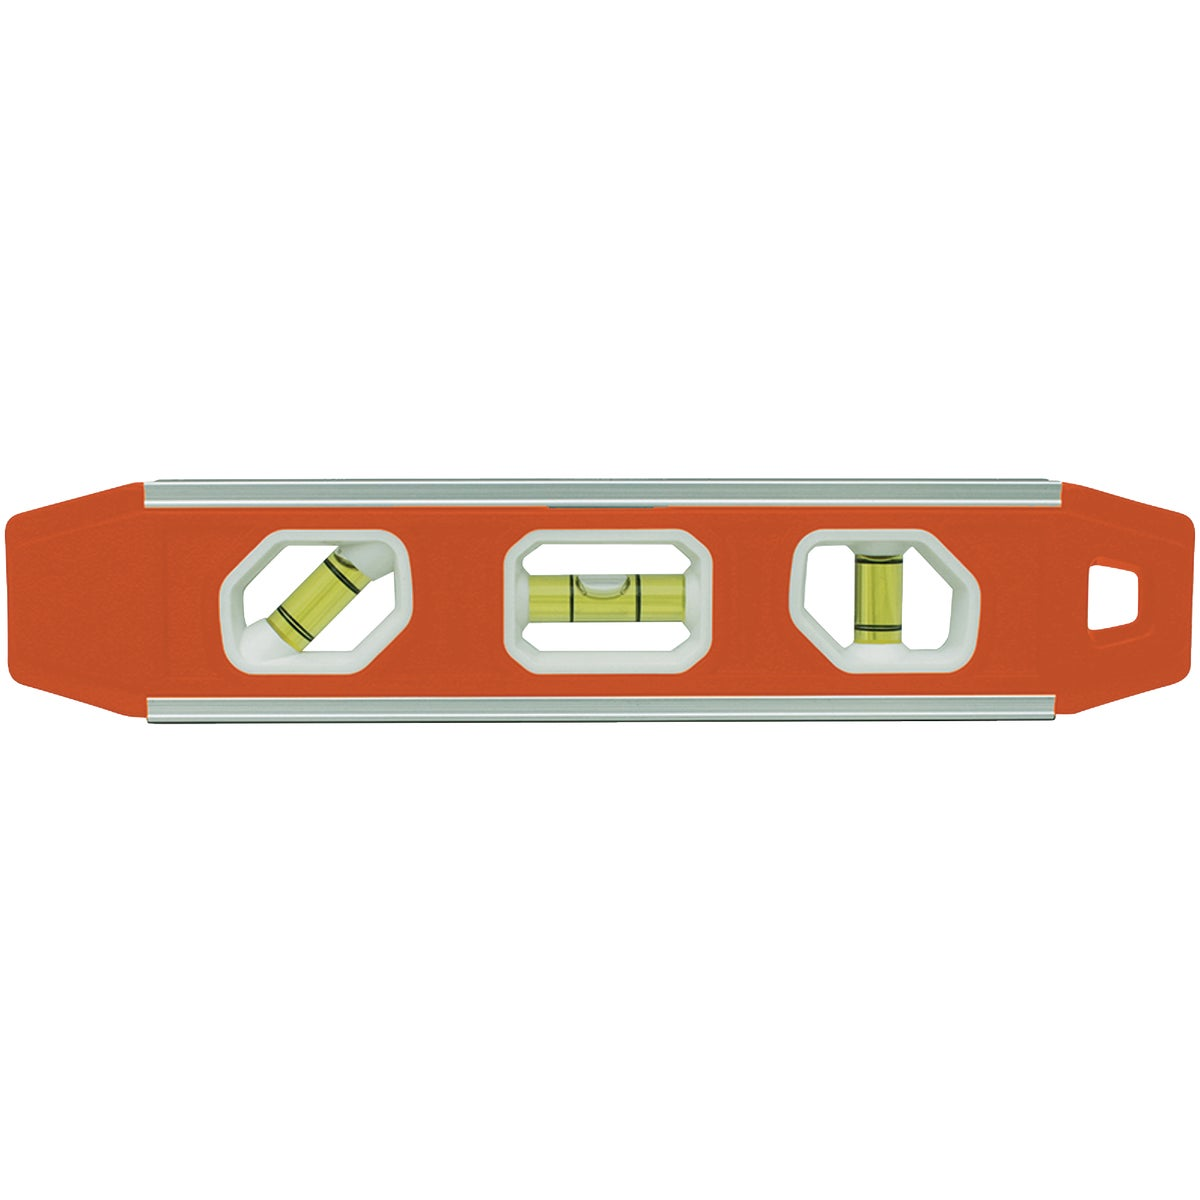 "9"" MAG TORPEDO LEVEL - 1401-0900 by Johnson Level & Tool"